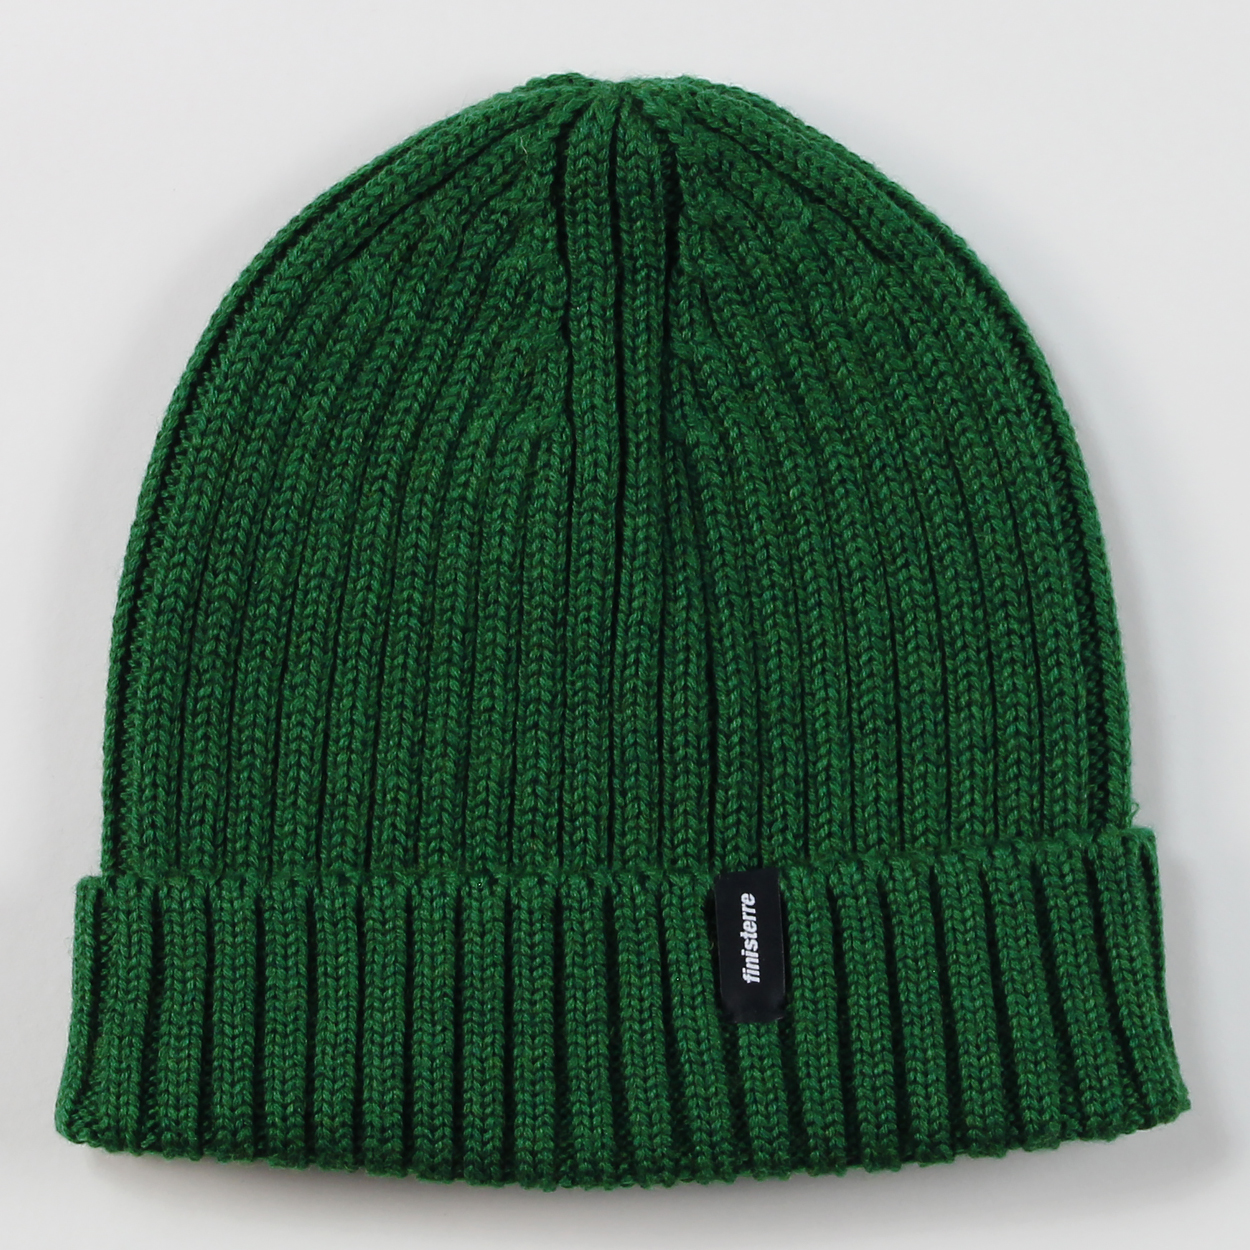 Finisterre Fisherman Merino Woolen Cuff Beanie Forest Green £18.75 4635d531cce